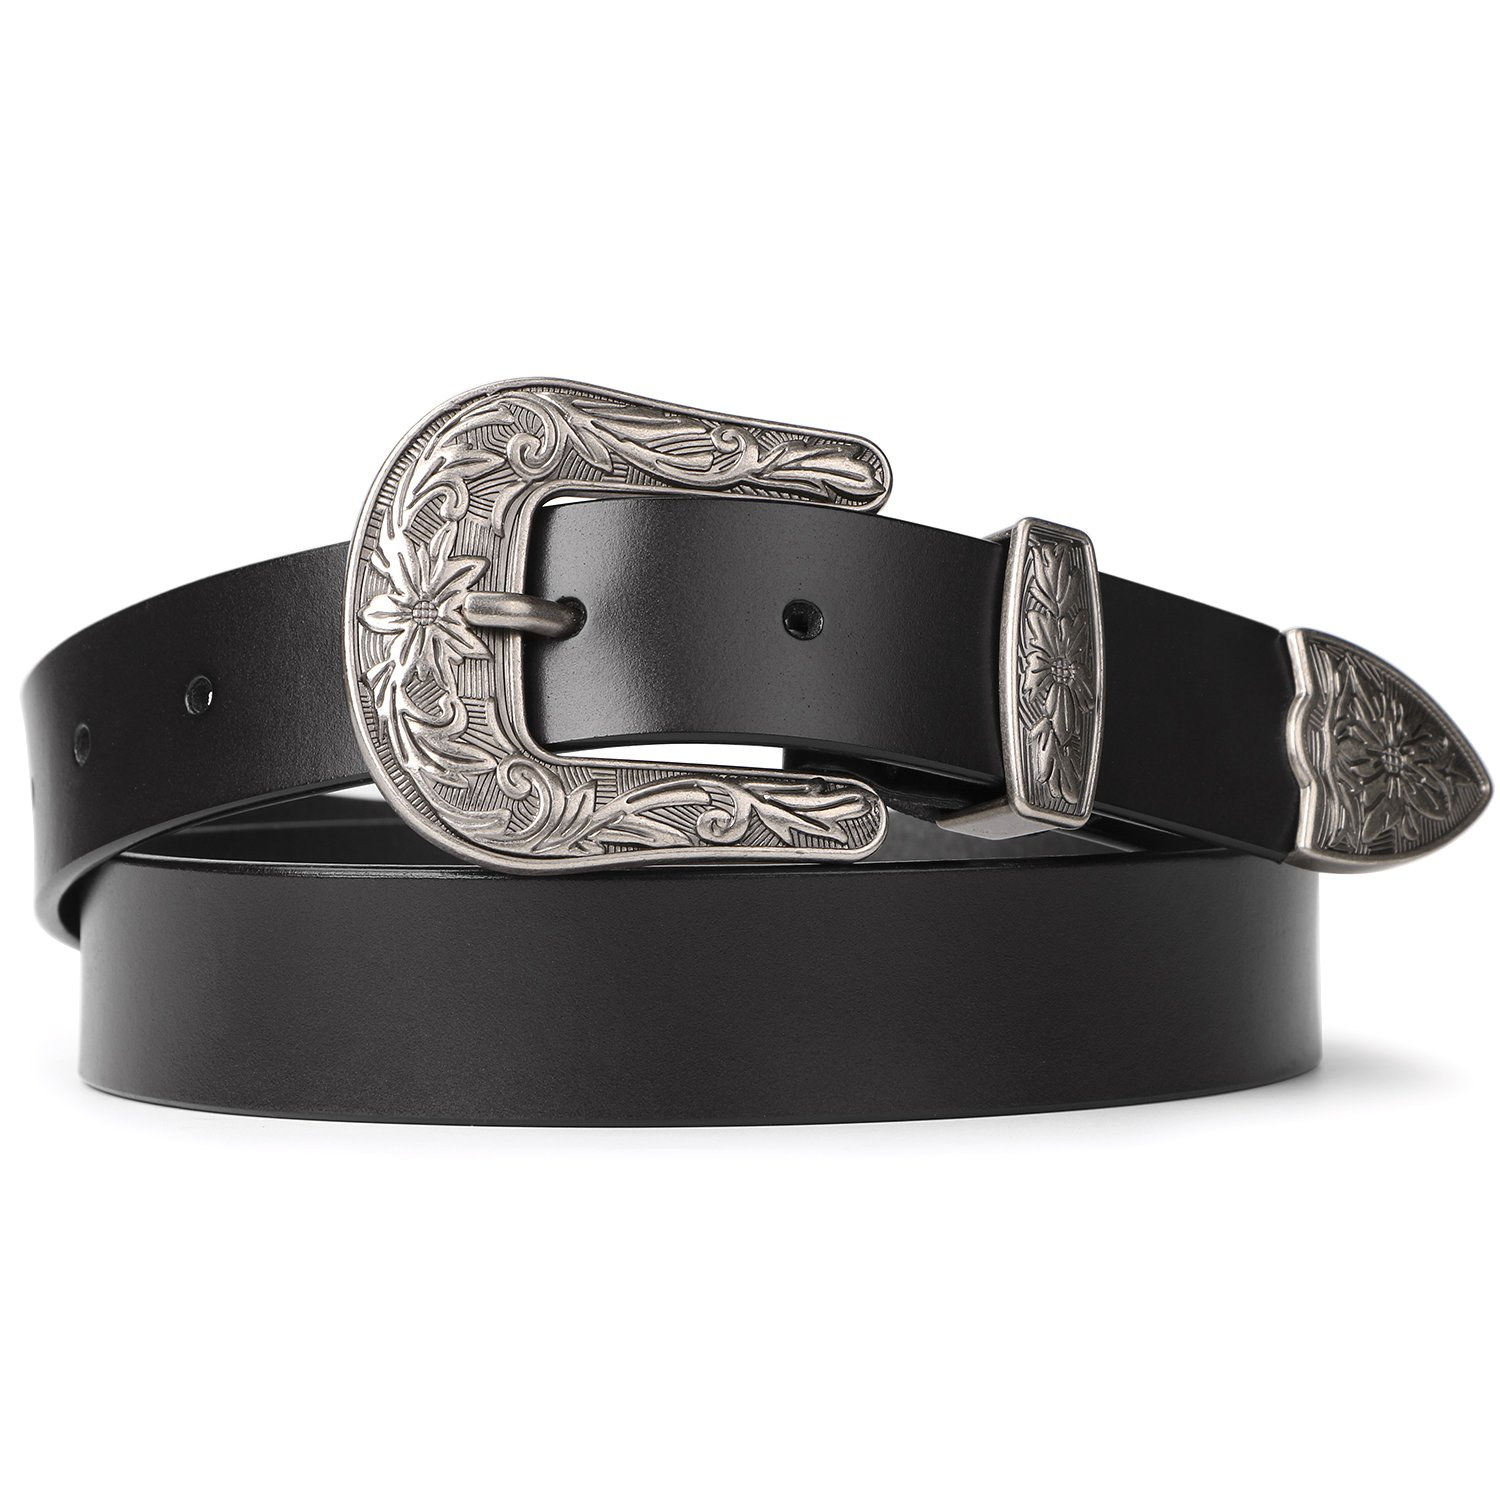 "Fashion Leather Belts for Women,SUOSDEY Womens Black Belt with Vintage Buckle, 39""-43"""